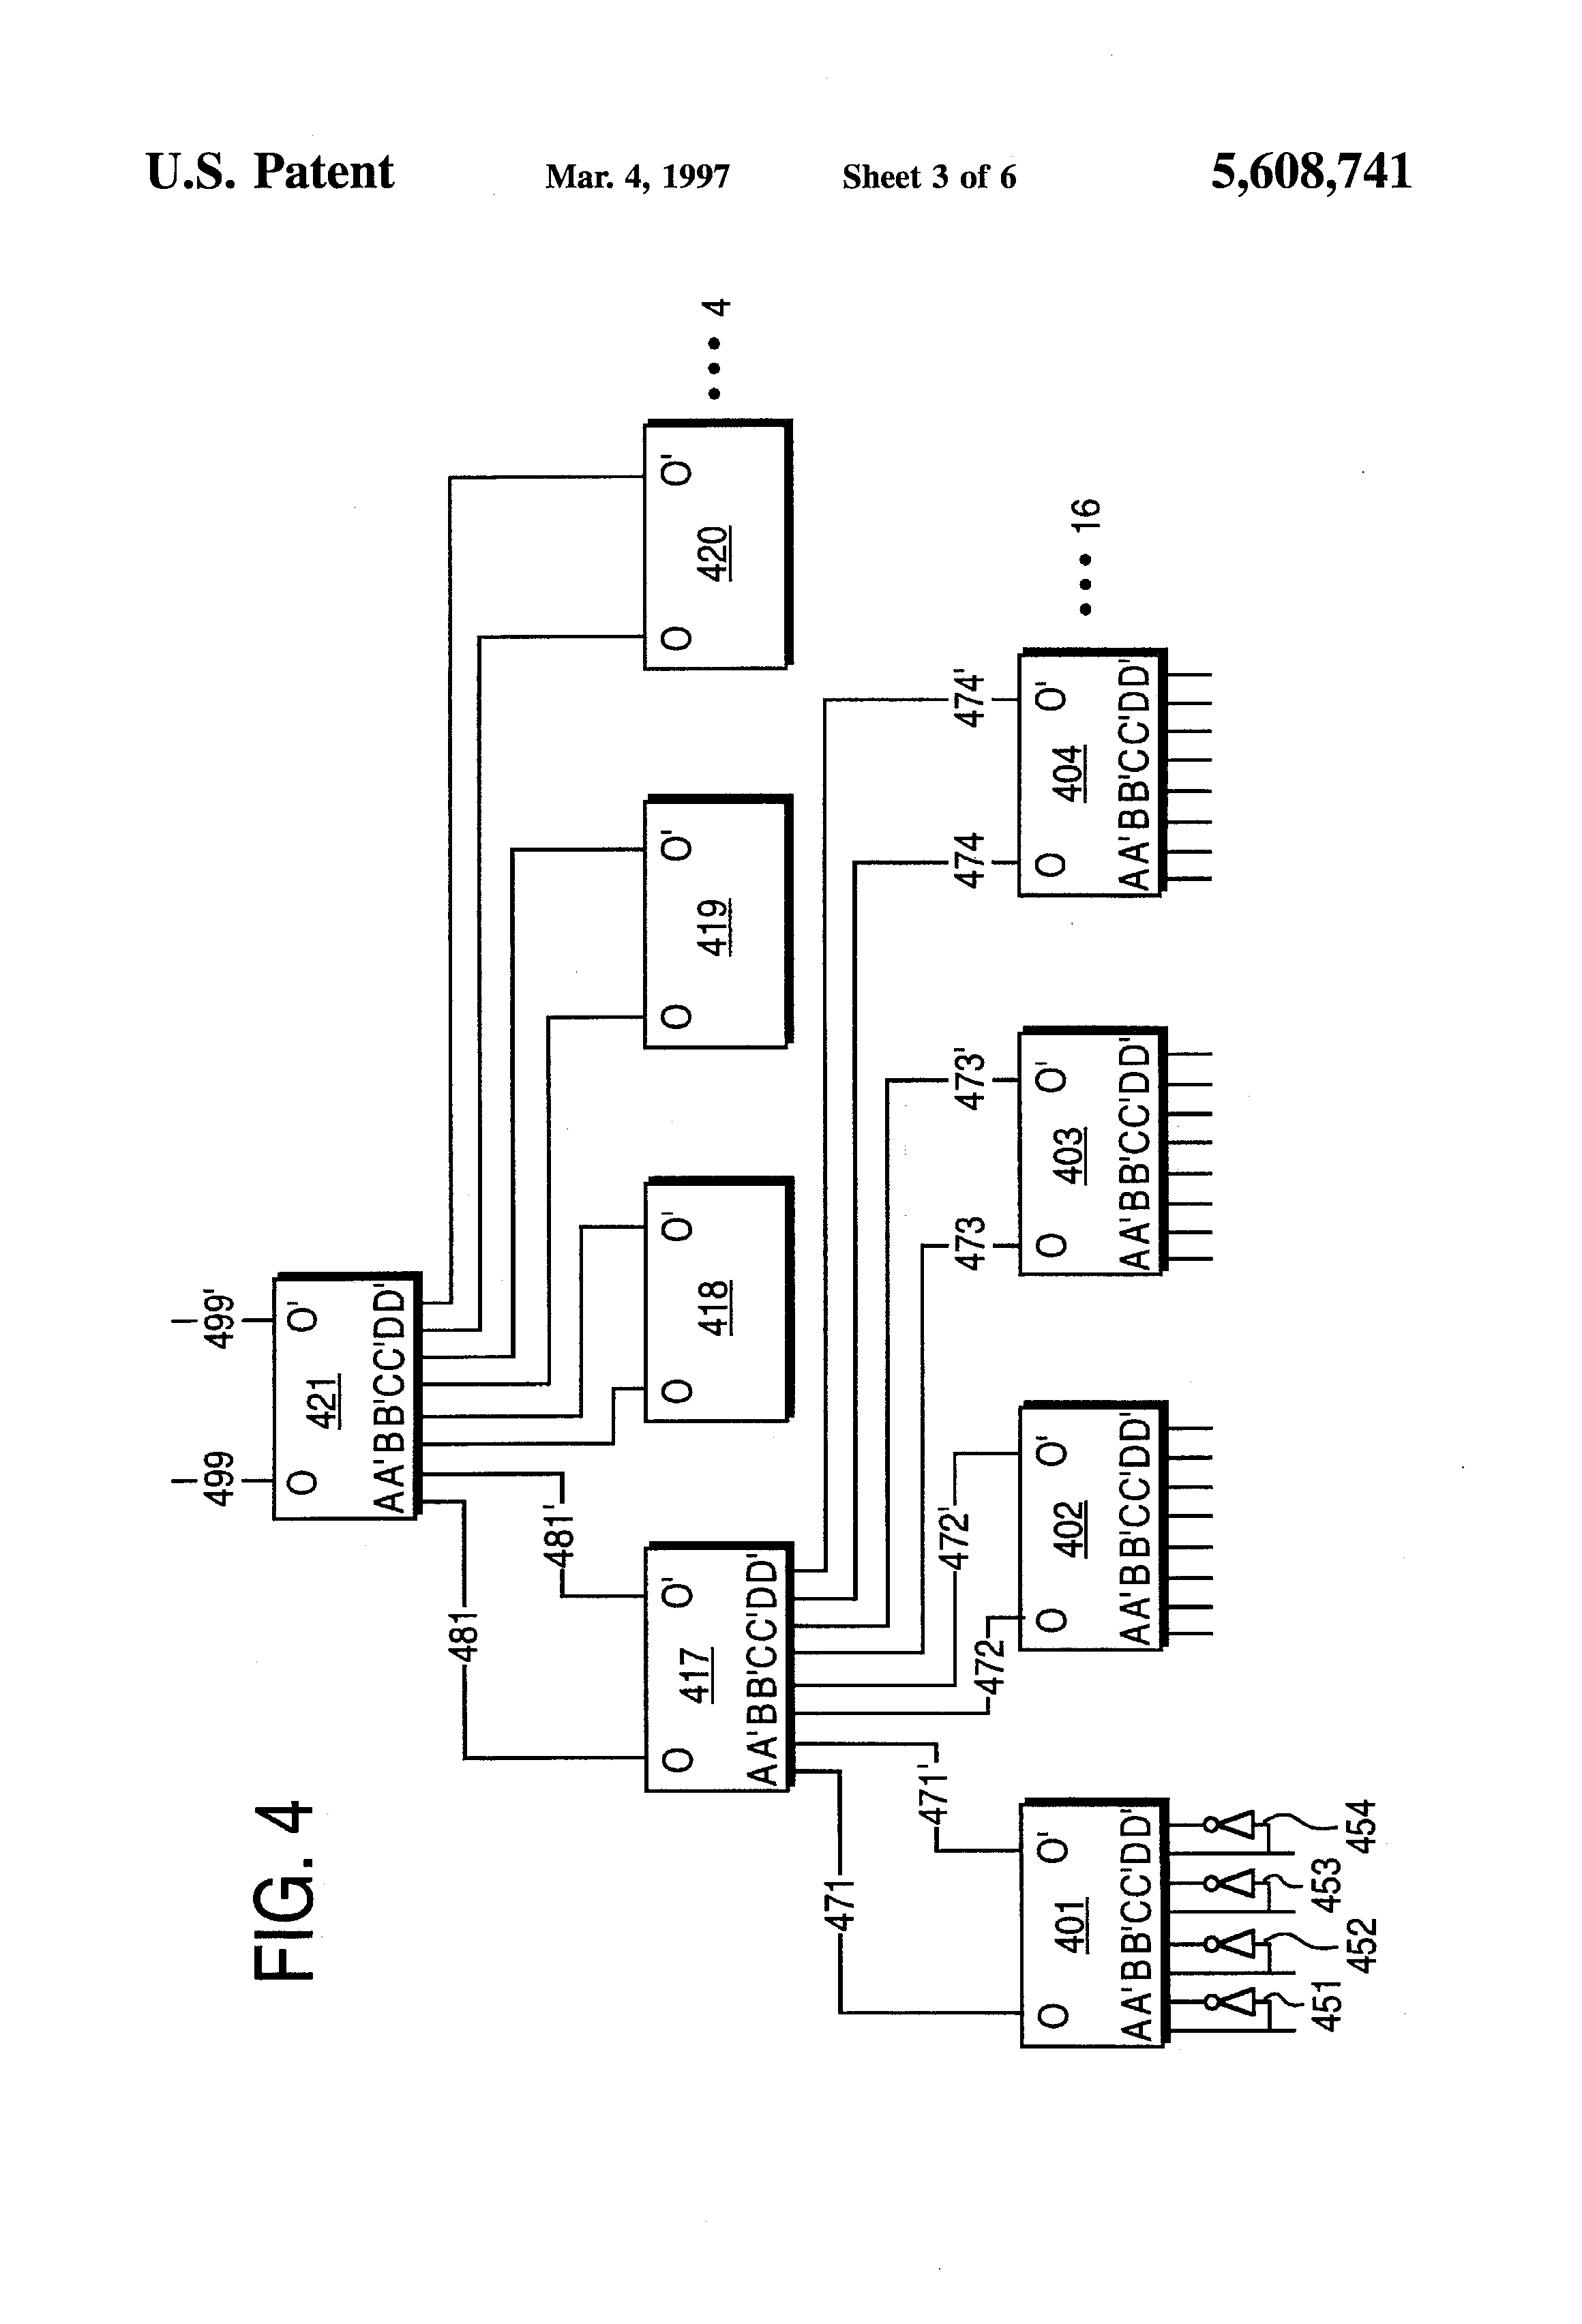 patent us5608741 - fast parity generator using complement pass-transistor logic